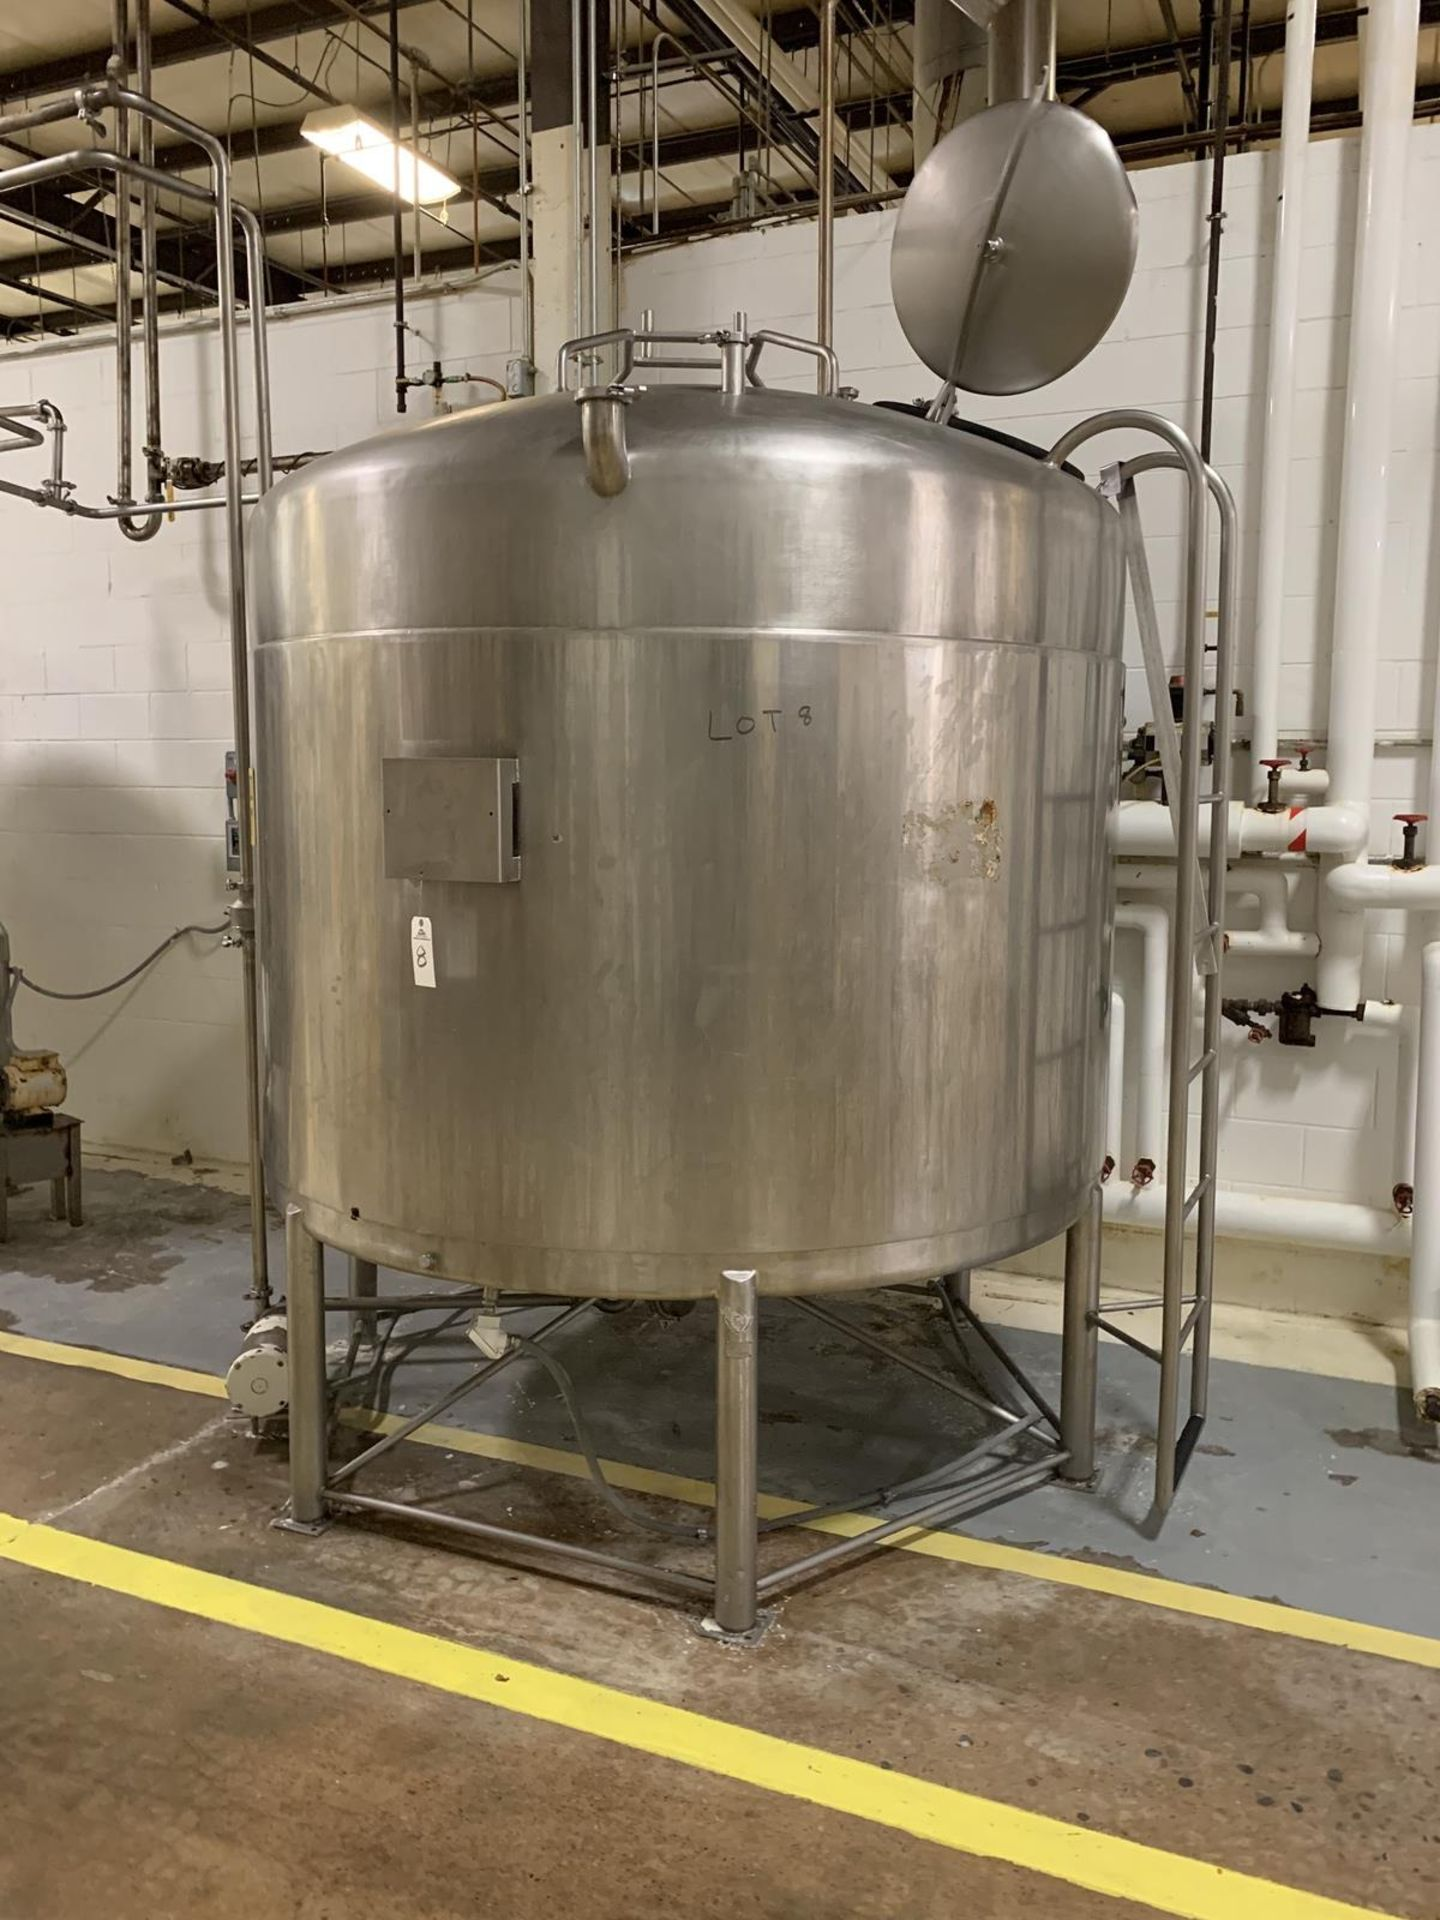 Lot 8 - 1500 Gallon Stainless Steel Mixing Tank , Full Sweep Agitation (missing agitator dr | Rig Fee: 600